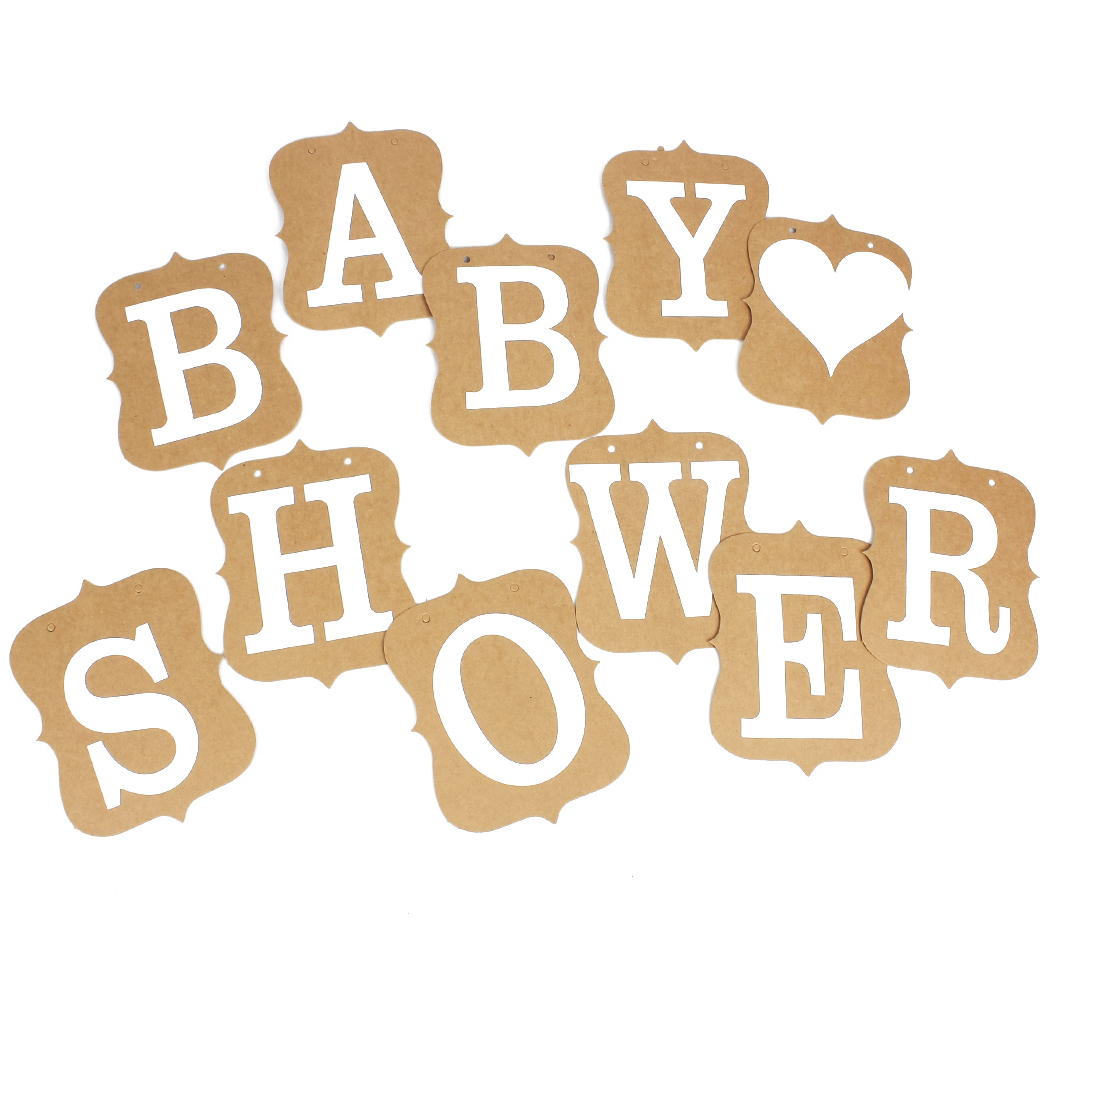 BABY SHOWER Banner Card Venue Party Decoration Bunting Garland Photo Prop Khaki